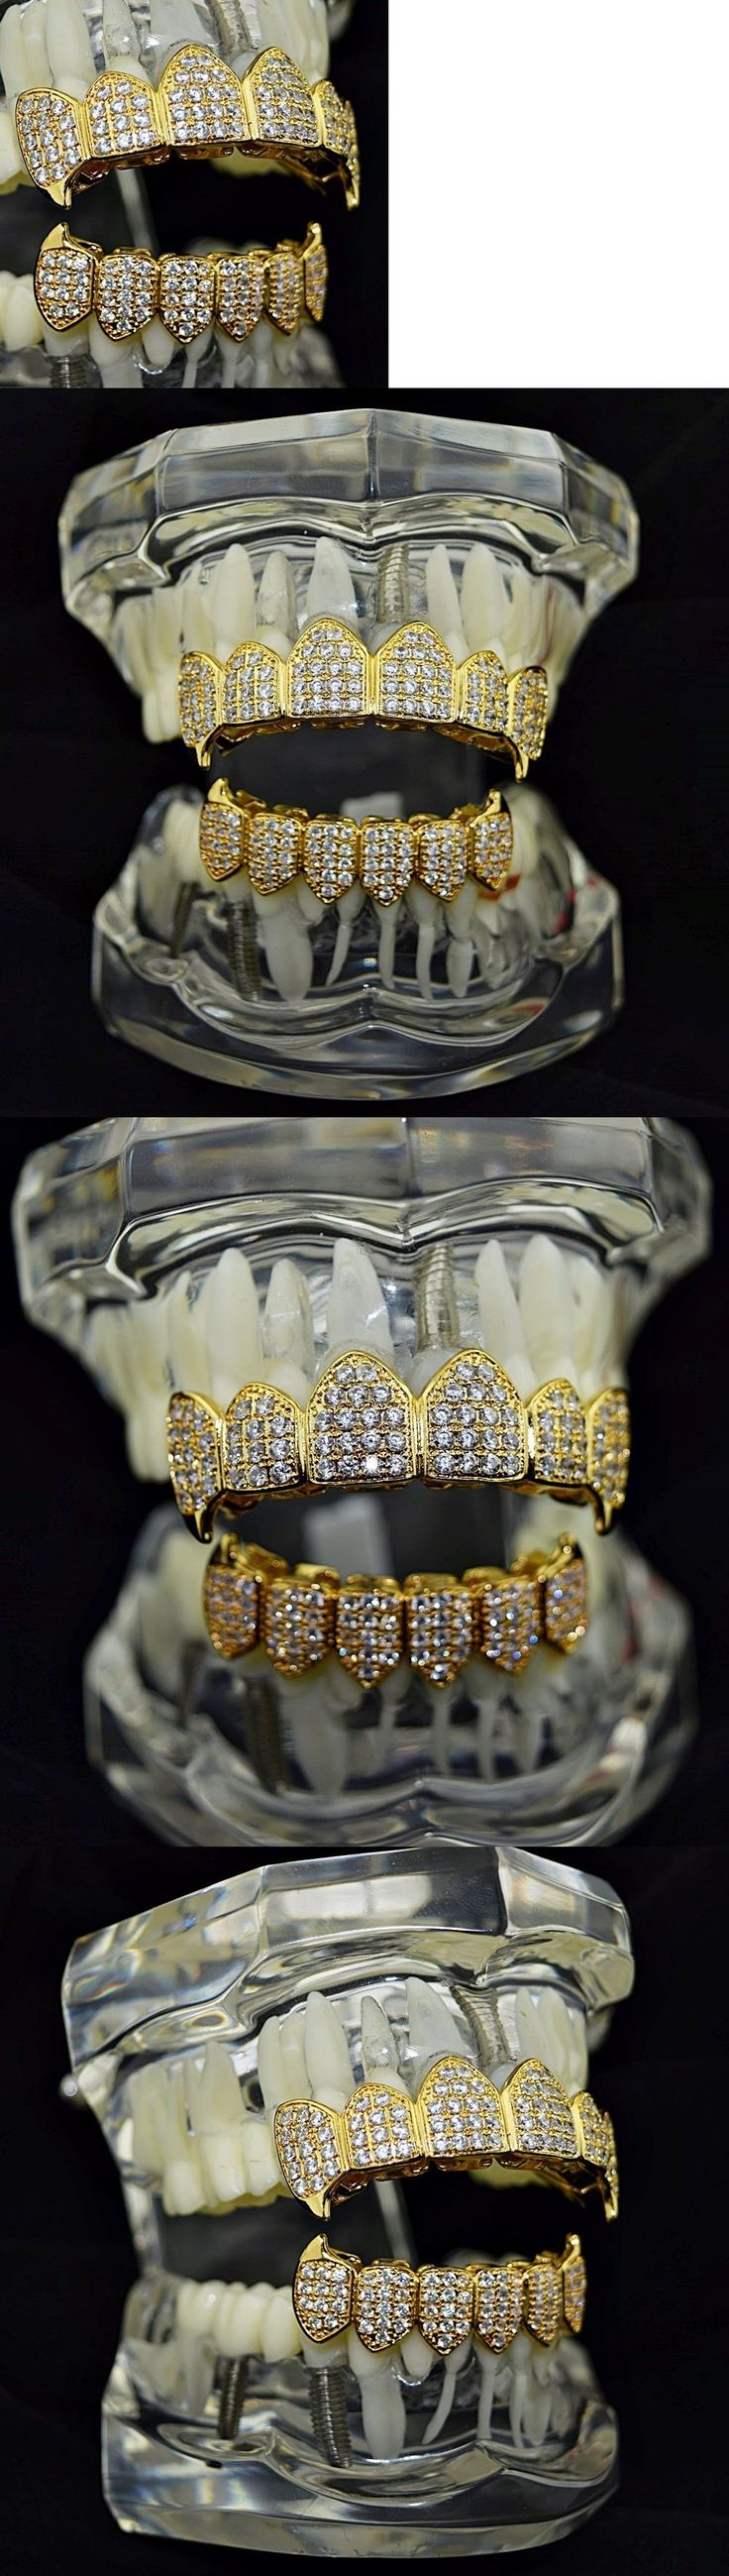 Grillz Dental Grills 152808: 18K Gold Plated Fang Grillz Set Cz Fangs High Quality Micro Pave Vampire Teeth BUY IT NOW ONLY: $59.95